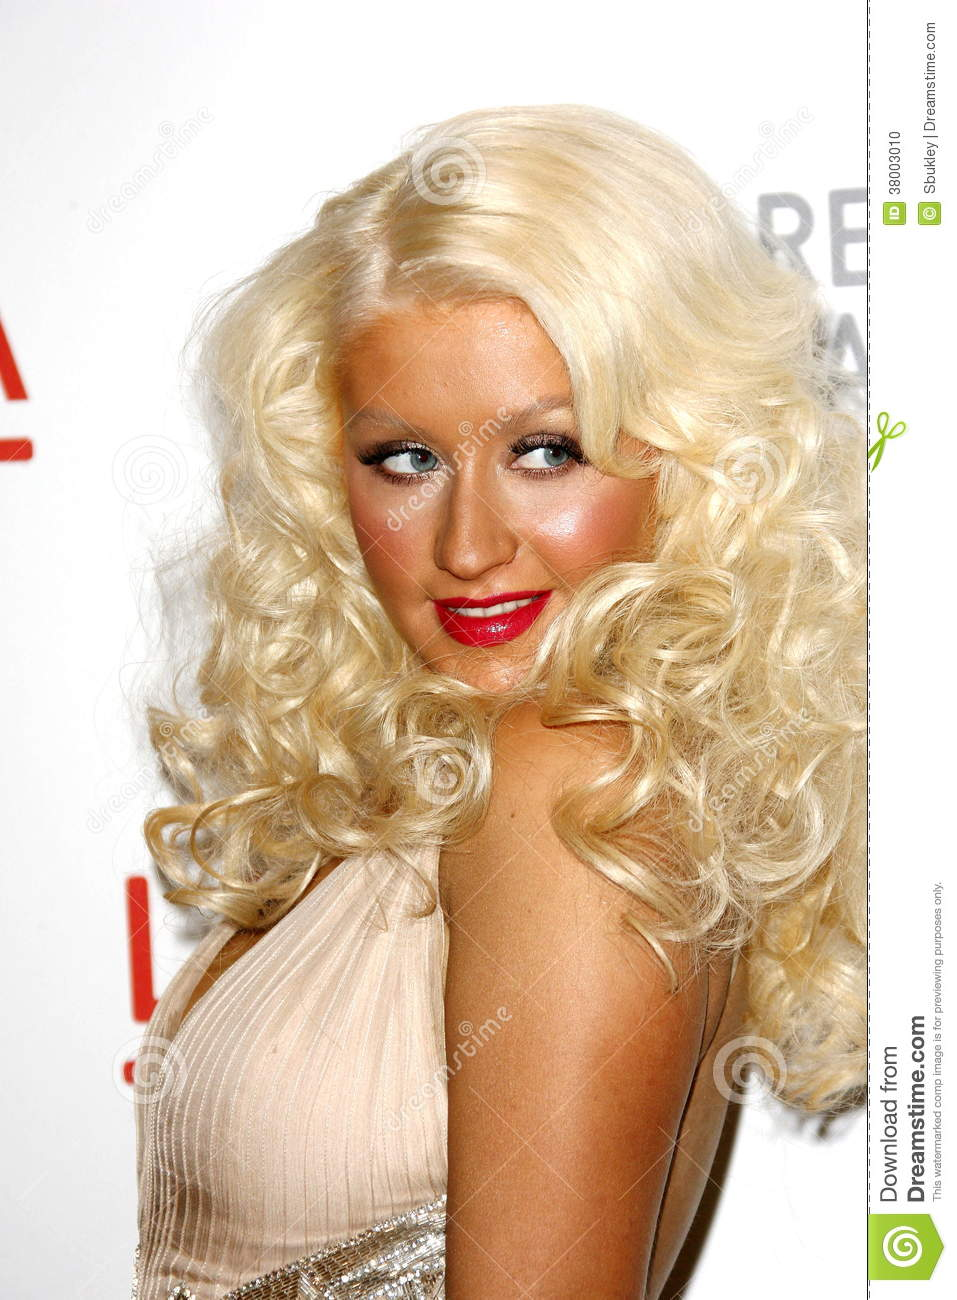 Discussion on this topic: Eileen Brennan, 25-christina-aguilera/